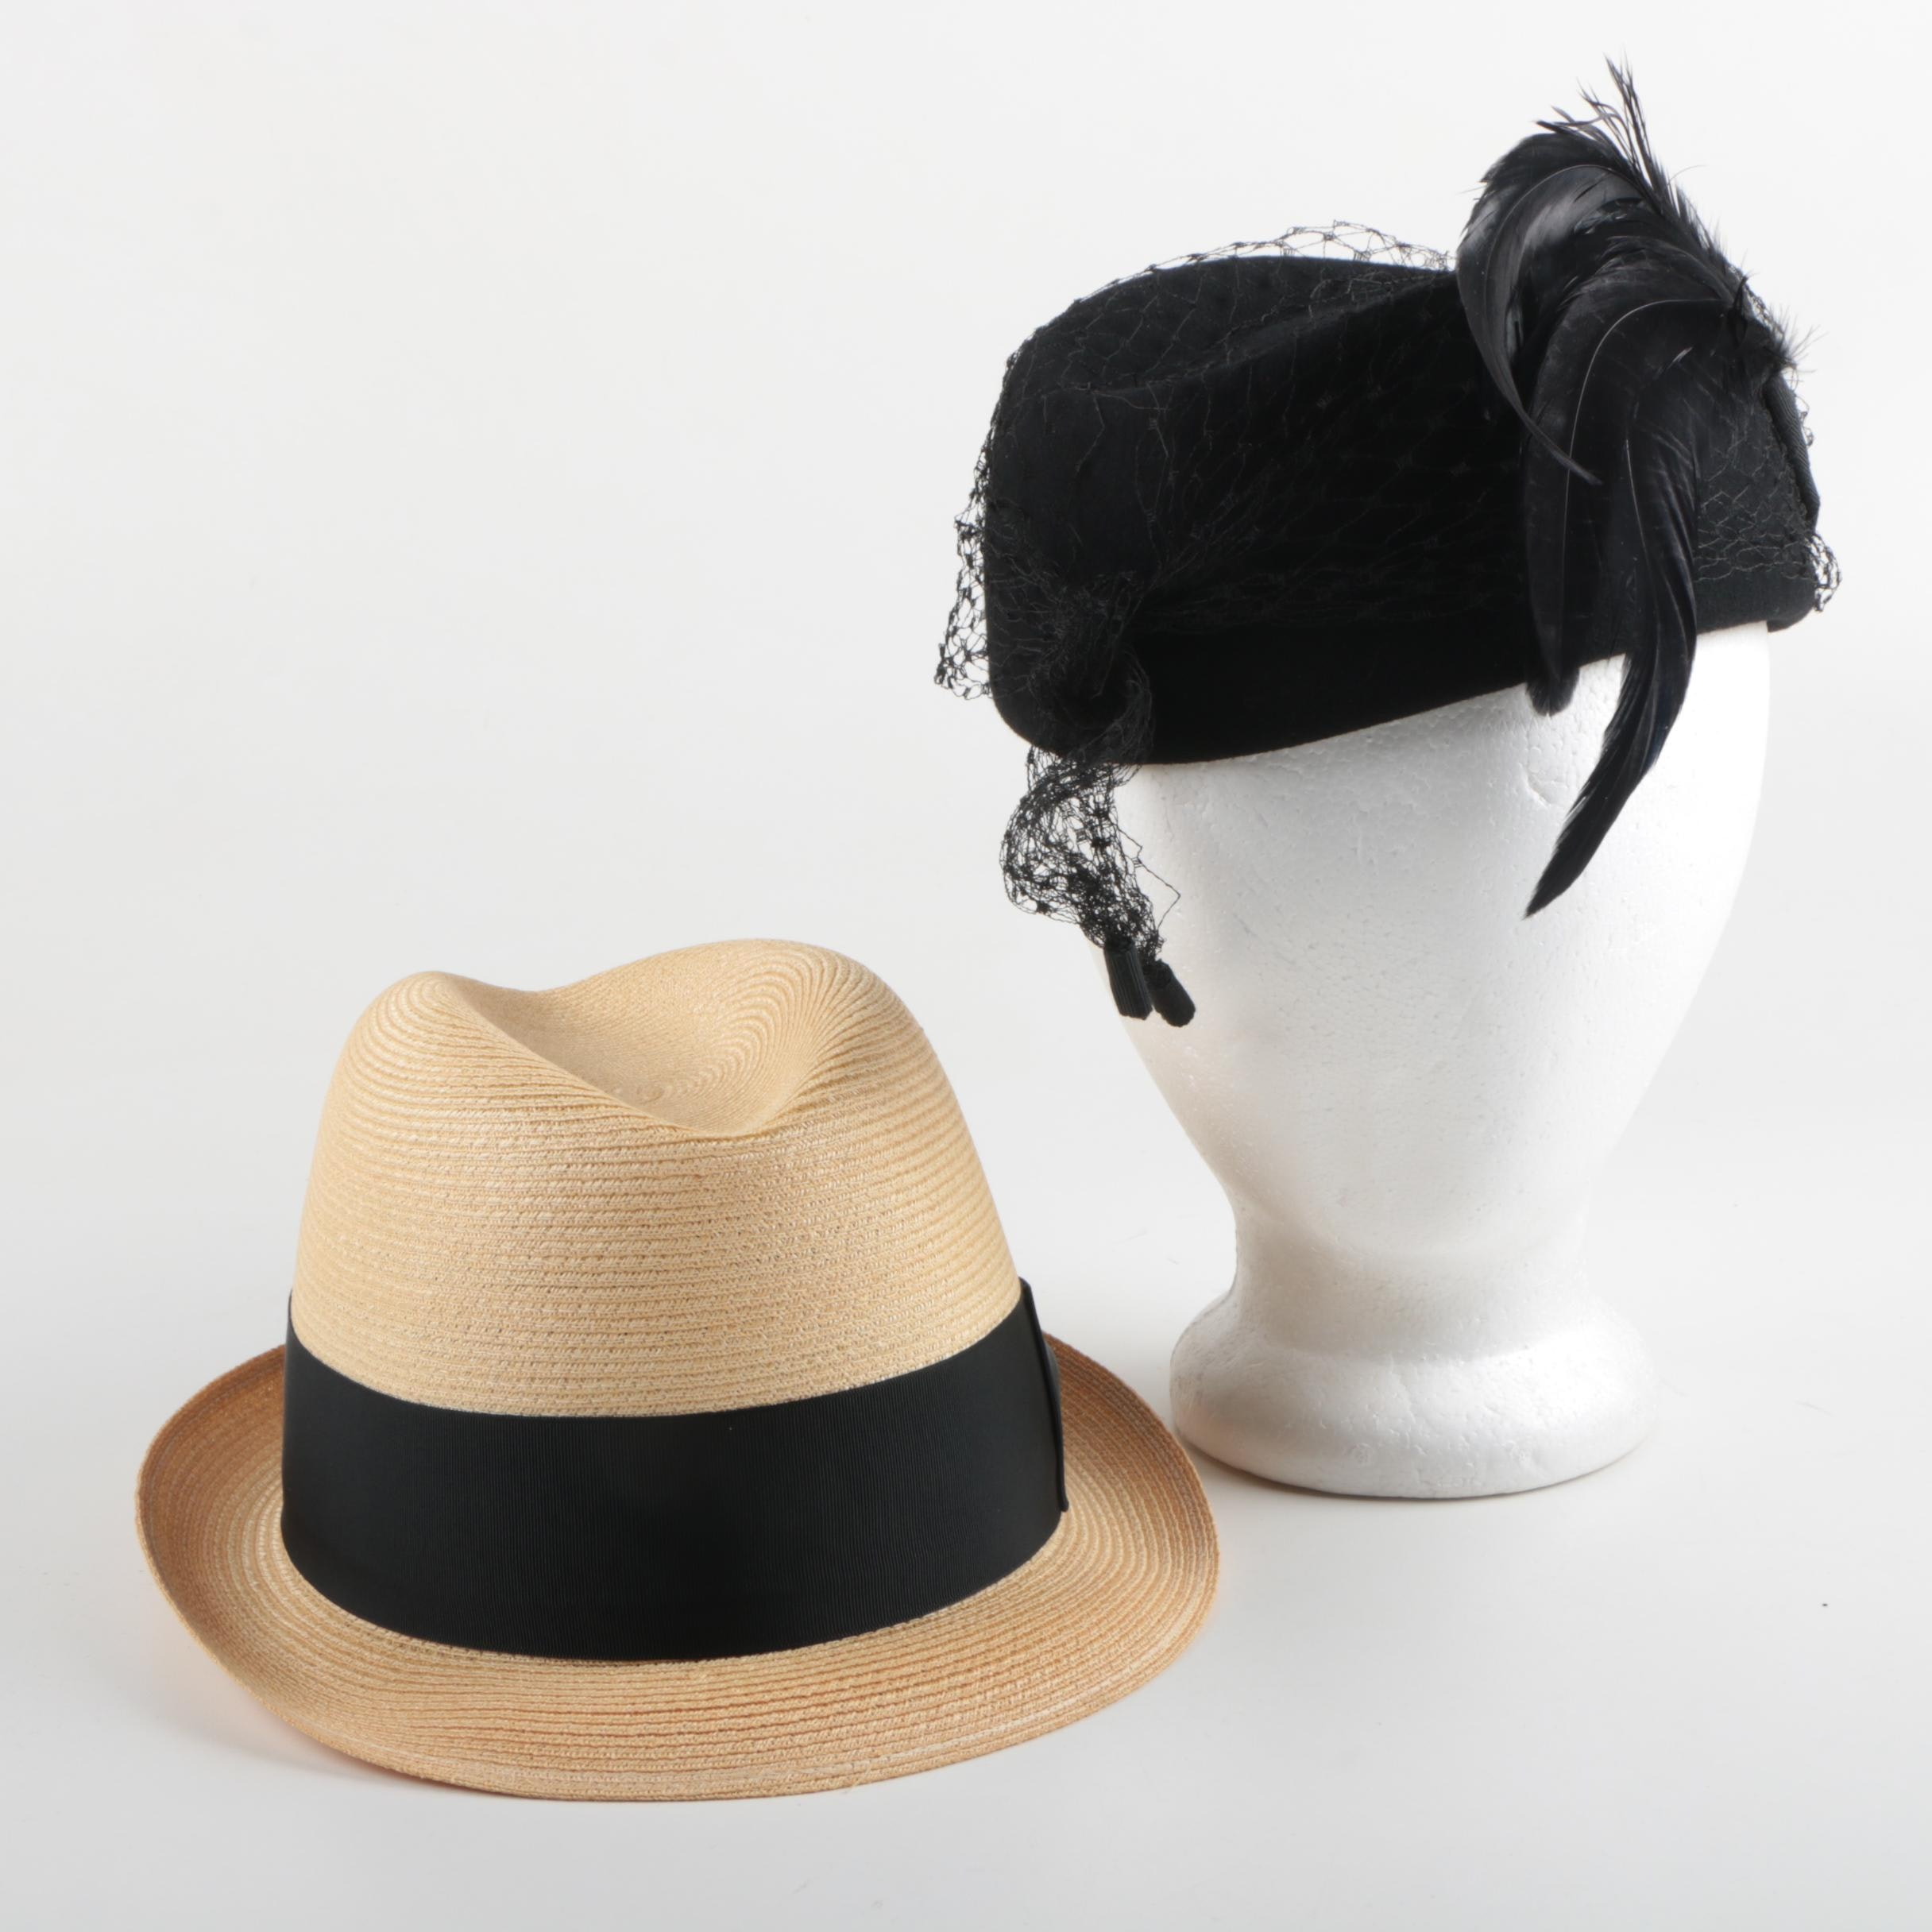 Women's and Men's Vintage Hats Including Mr. Charles and Knox